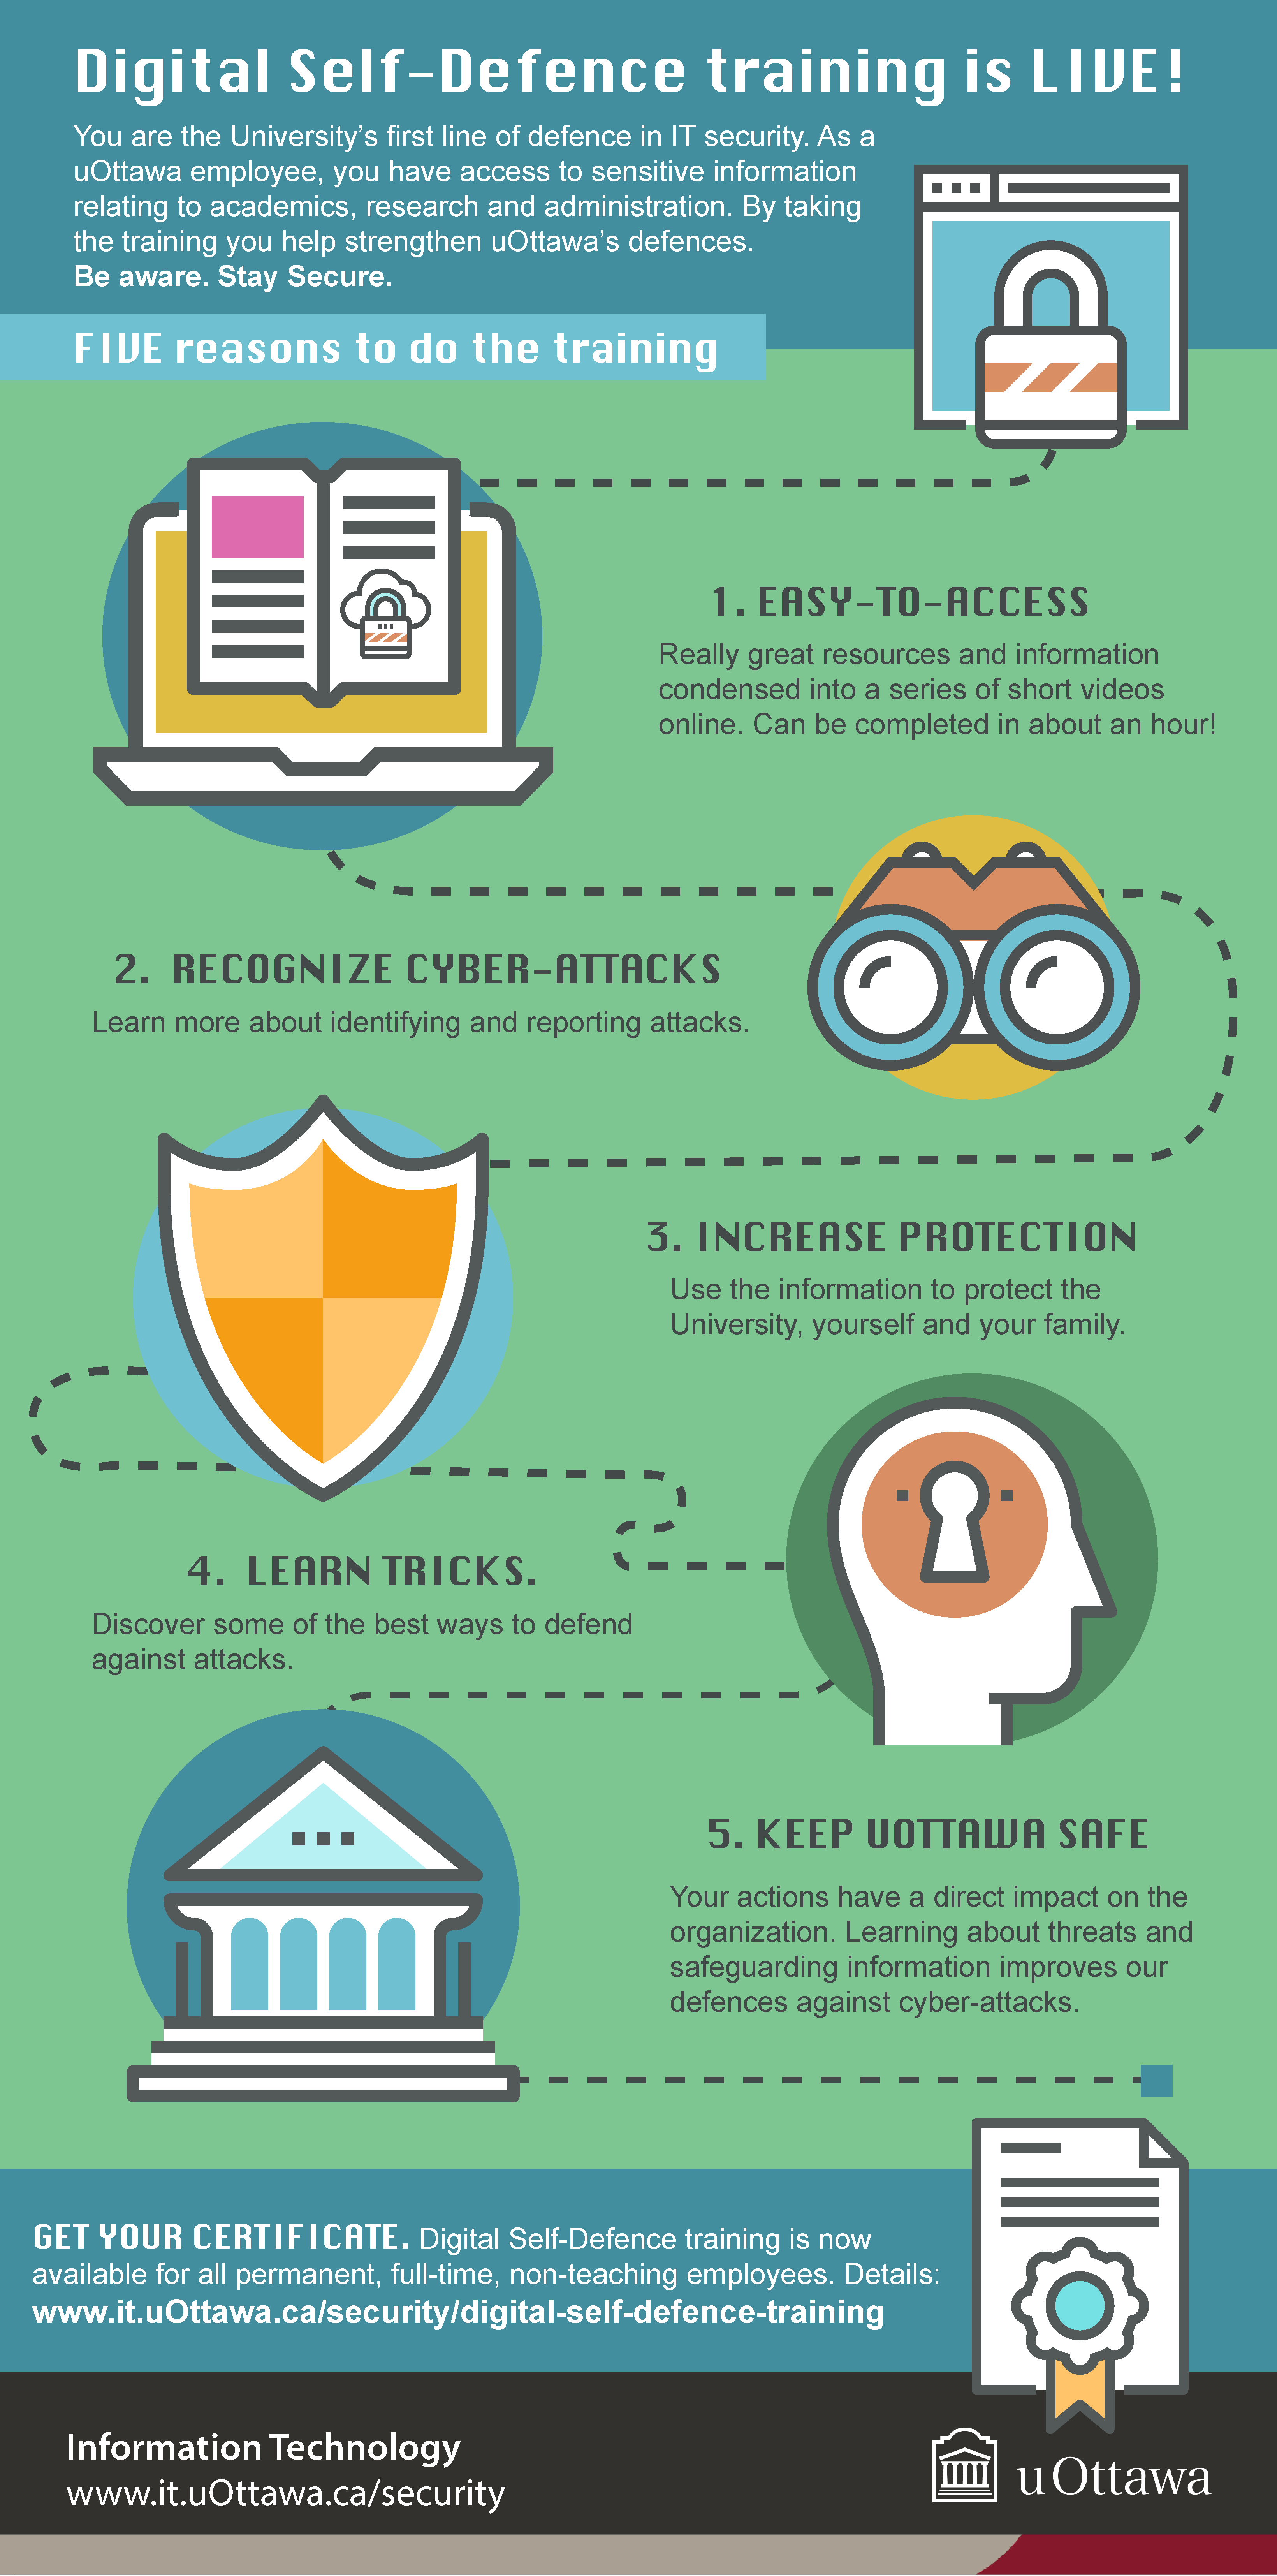 Five reasons to do the Digital self-defence training infographic